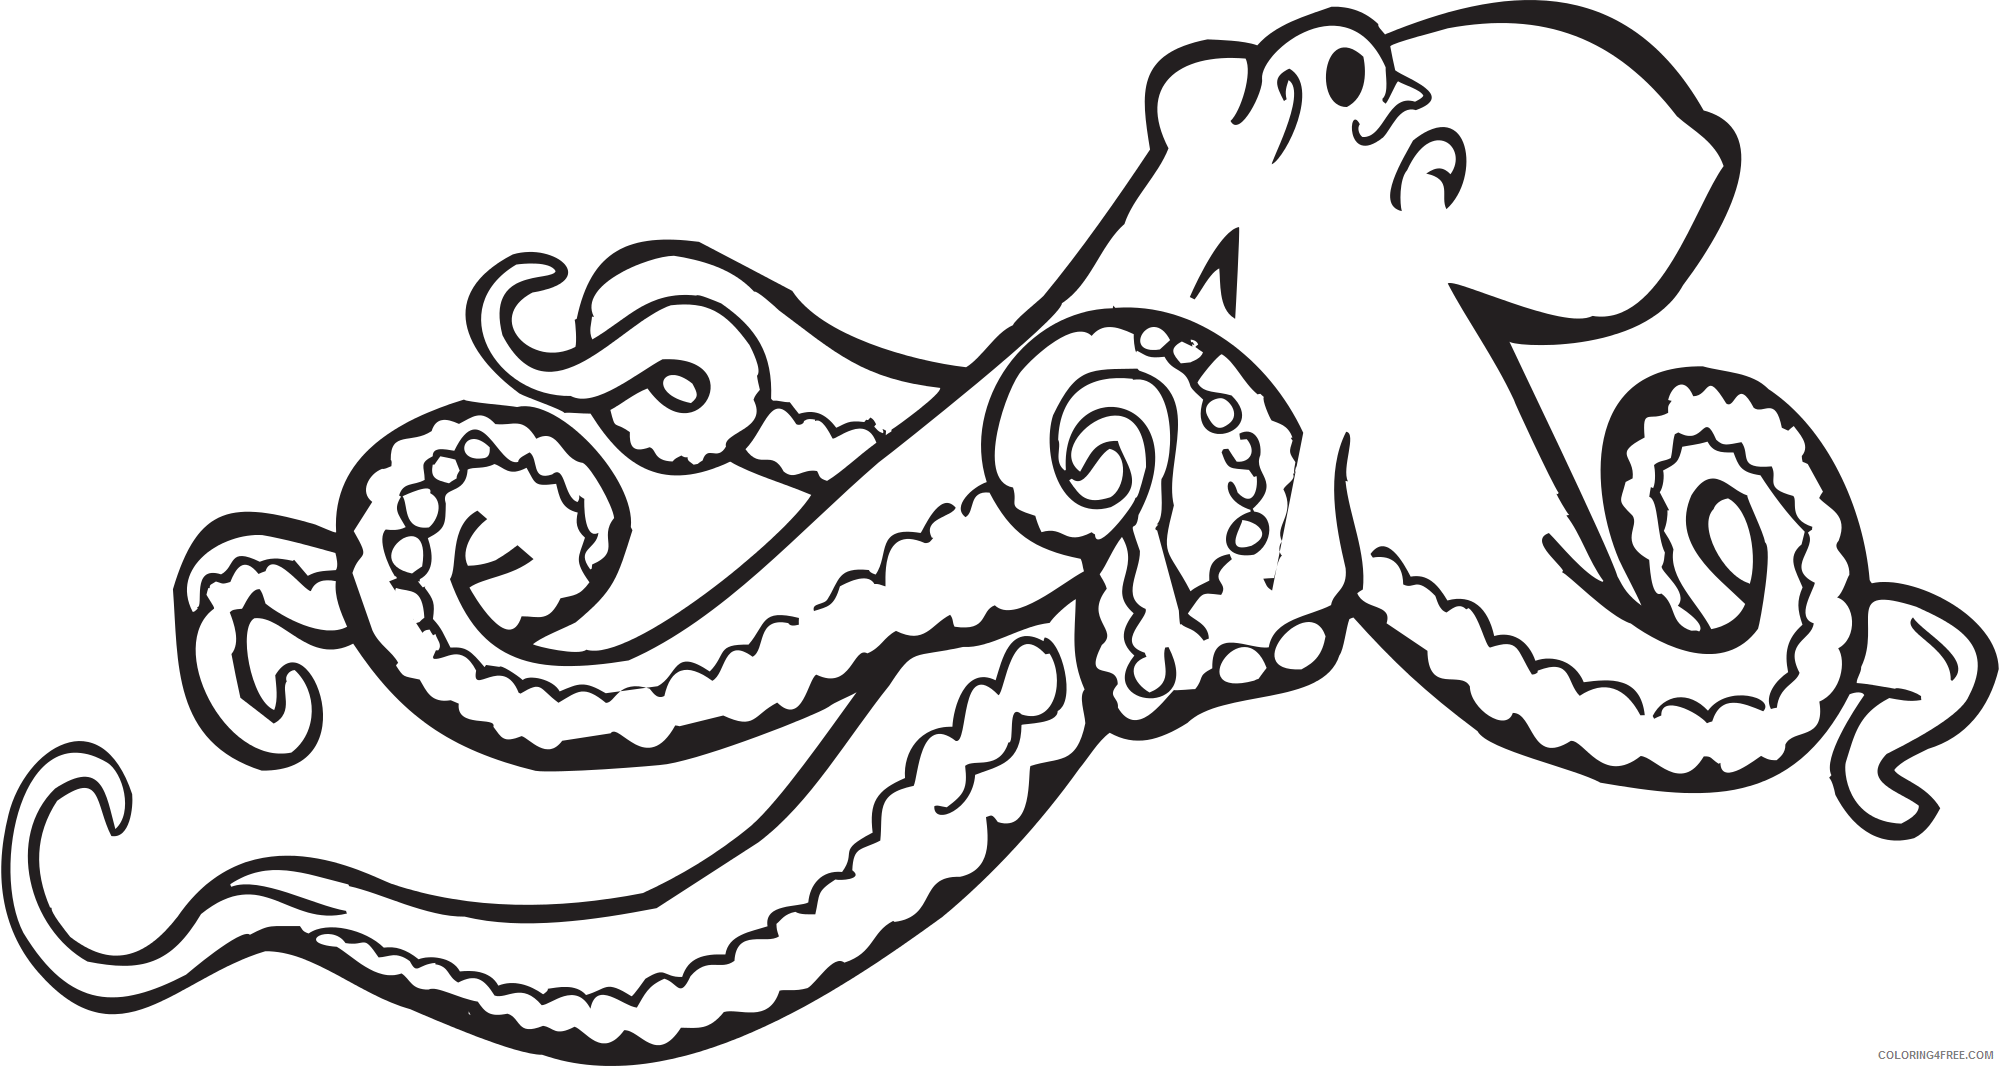 Black and White Octopus Coloring Pages octopus illustrations 2 octopus Printable Coloring4free